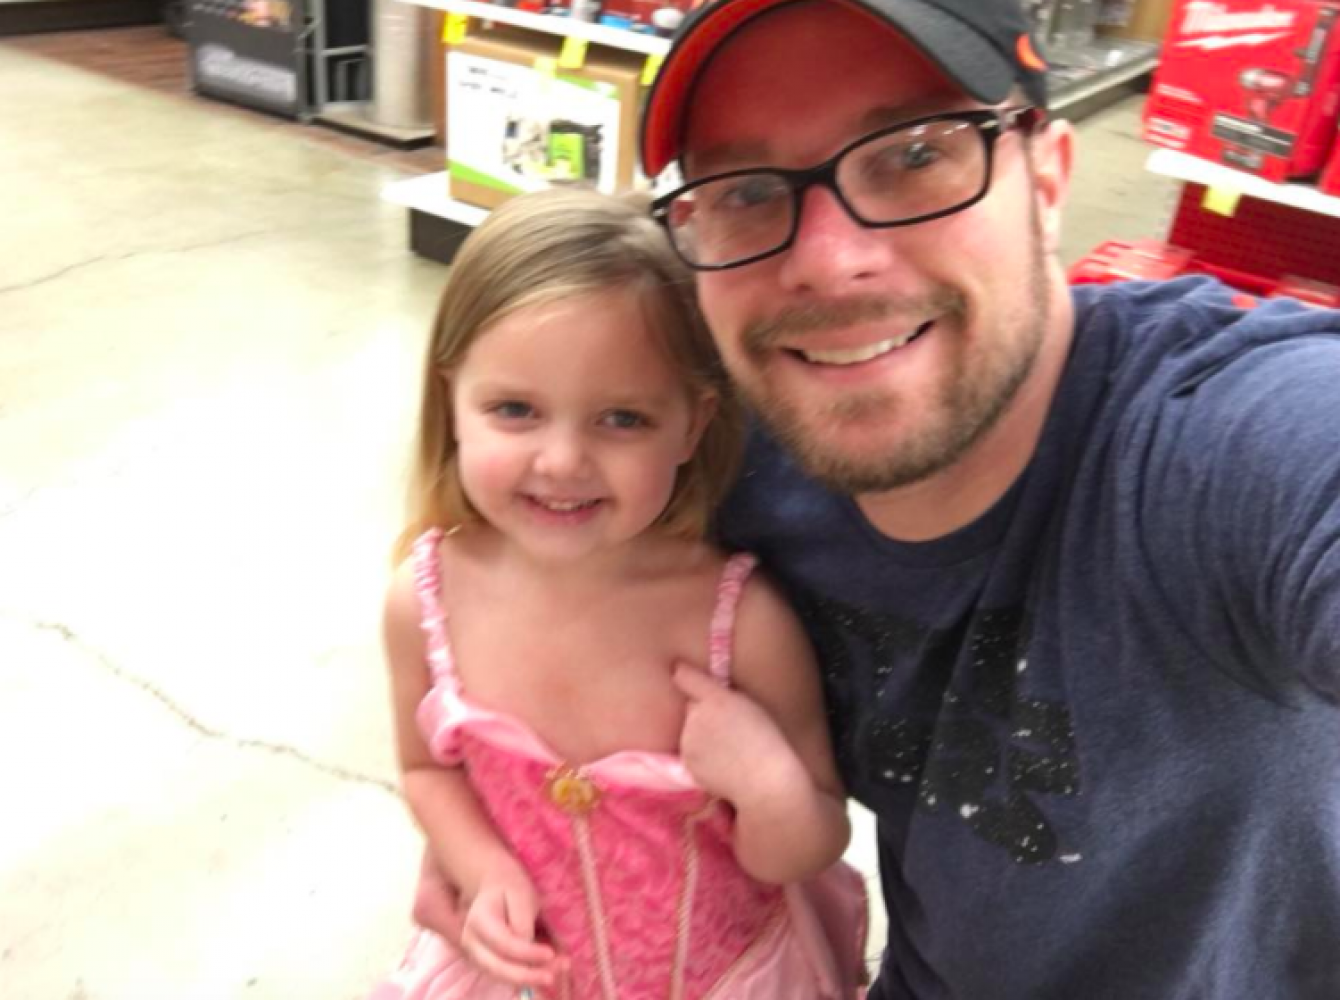 Let Them Dress Like a Princess At The Hardware Store